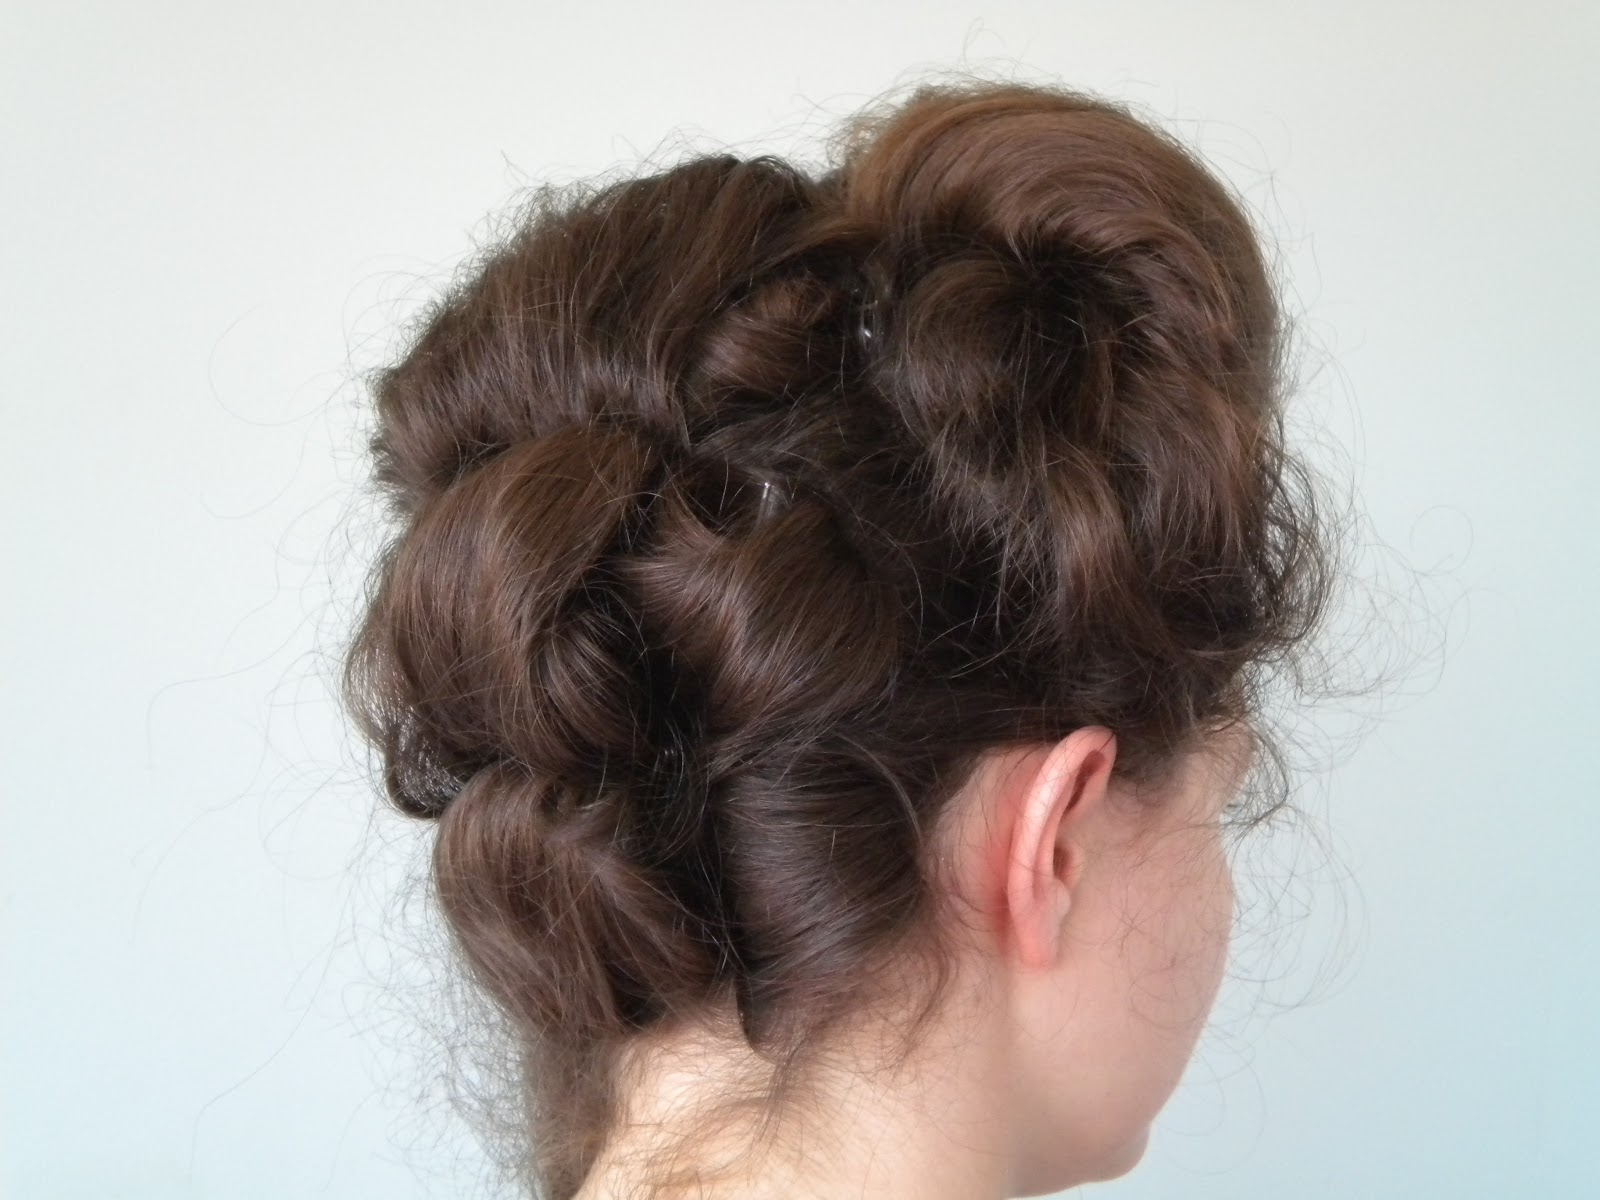 B Styled Hair Collection: Hair Styles: Classic Georgian Hairstyle